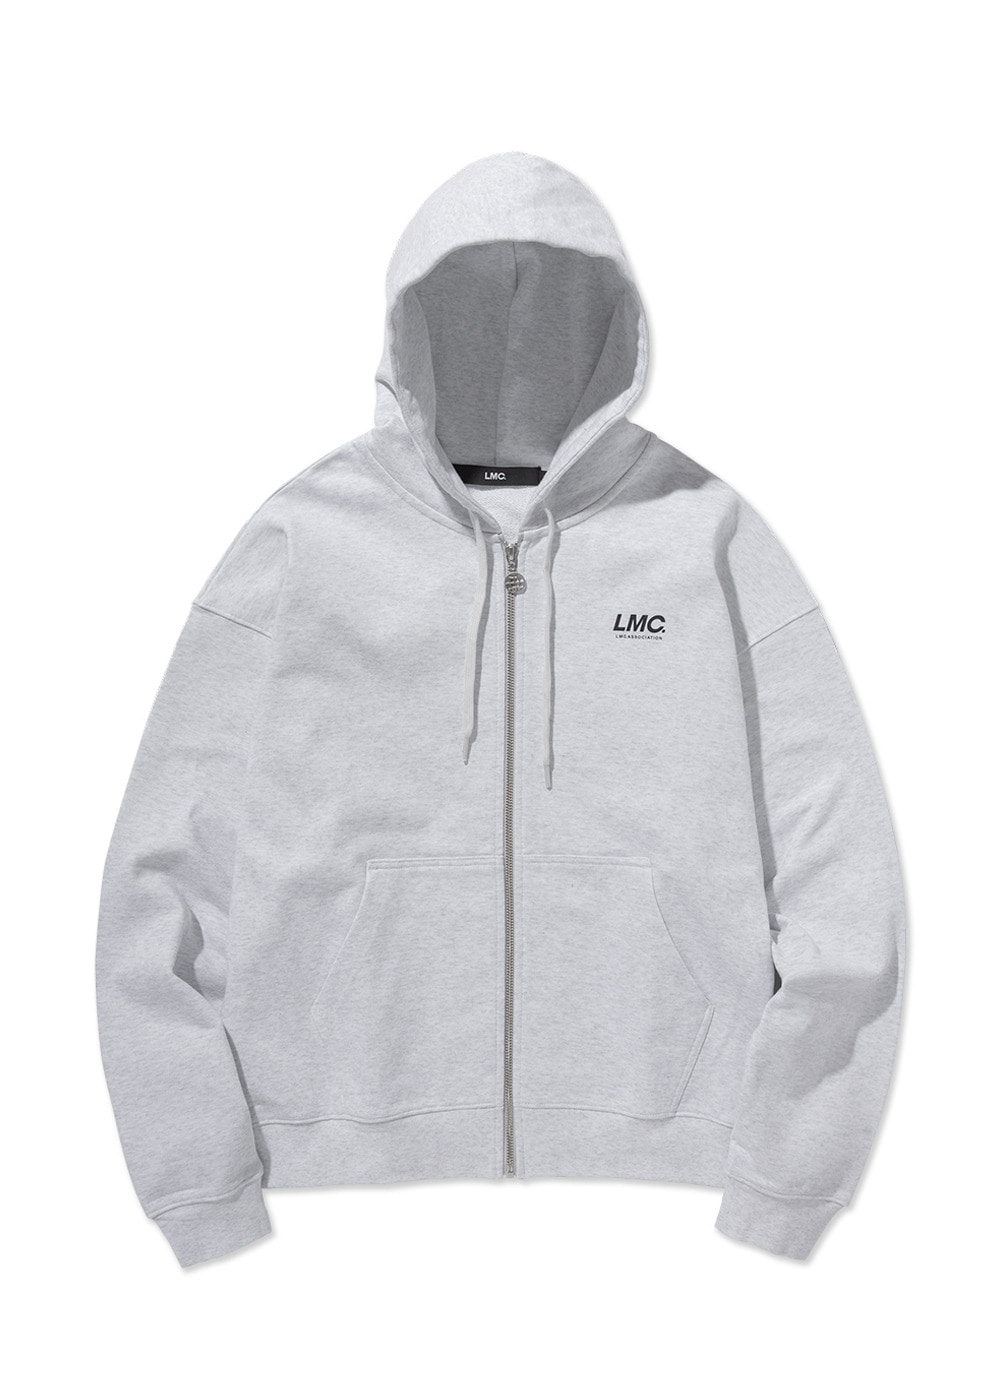 LMC ITALIC ZIP-UP HOODIE lt. heather gray